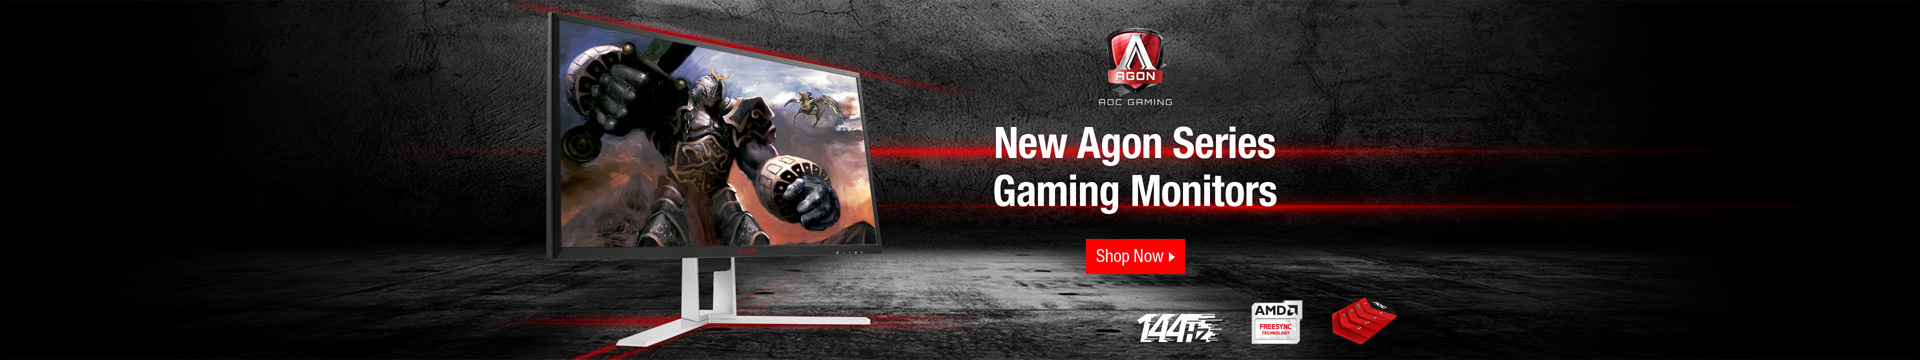 New Agon Series Gaming Monitors